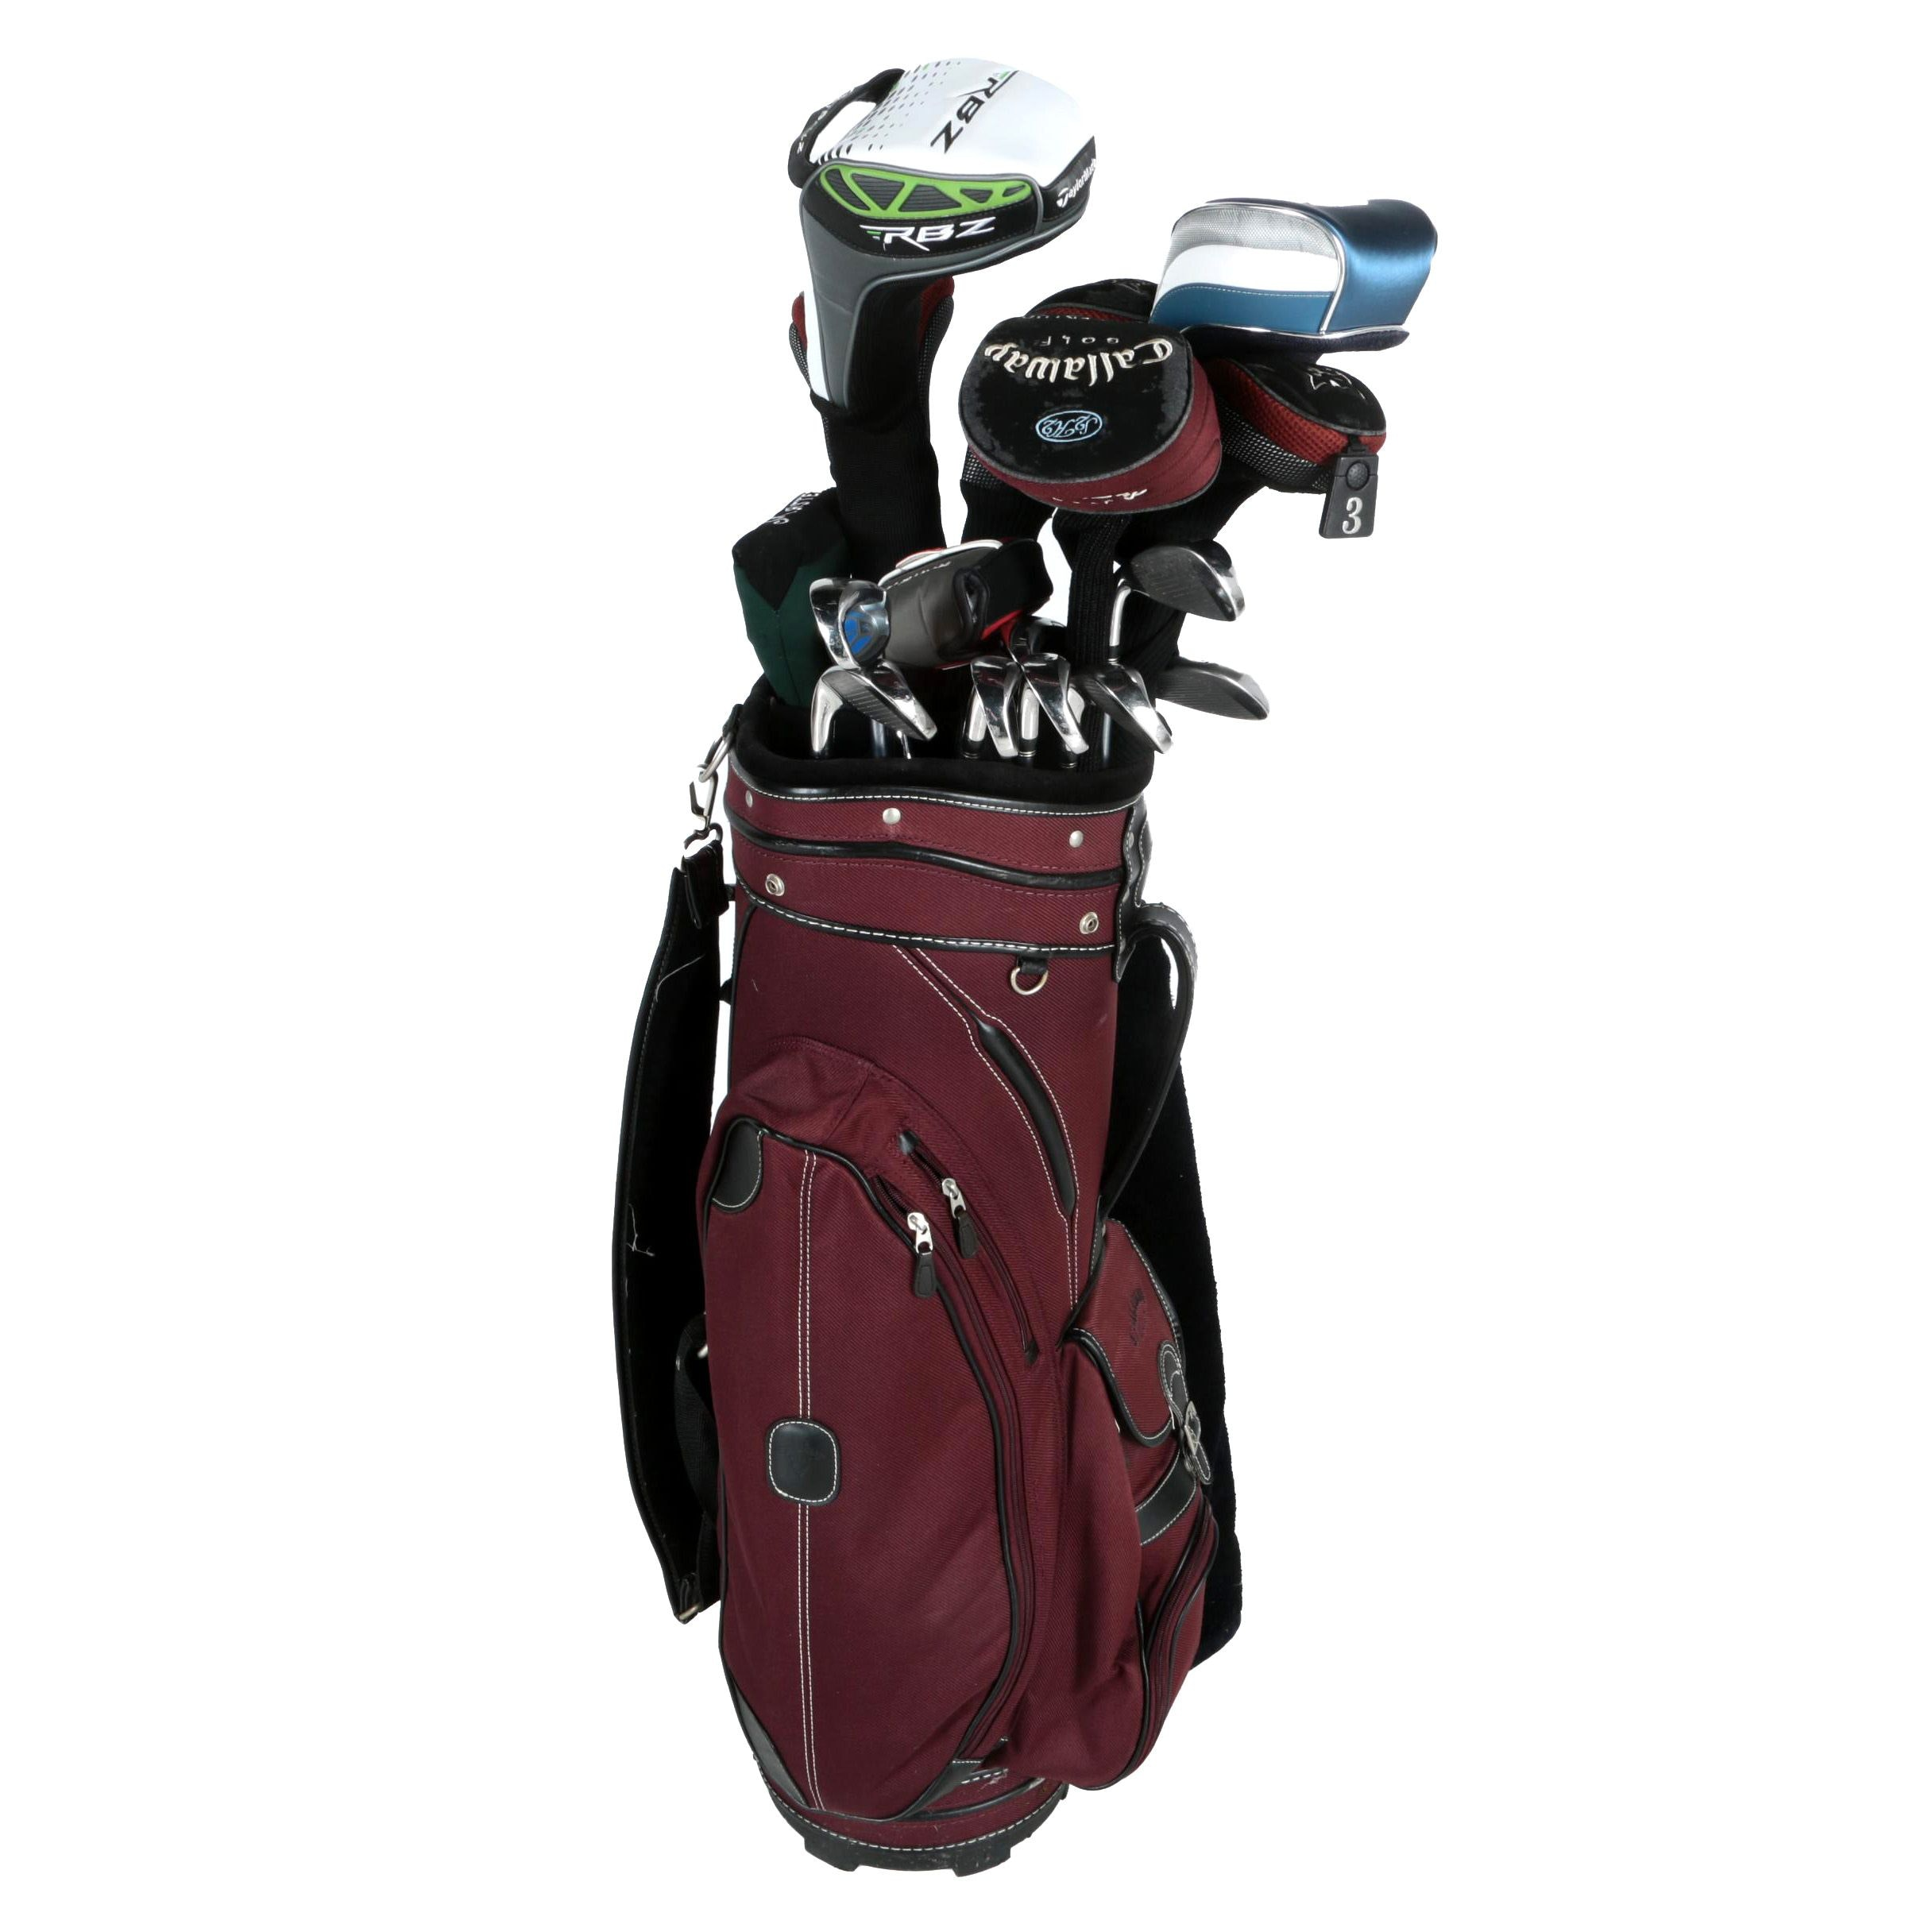 Set of Golf Clubs with Golf Bag and Accessories